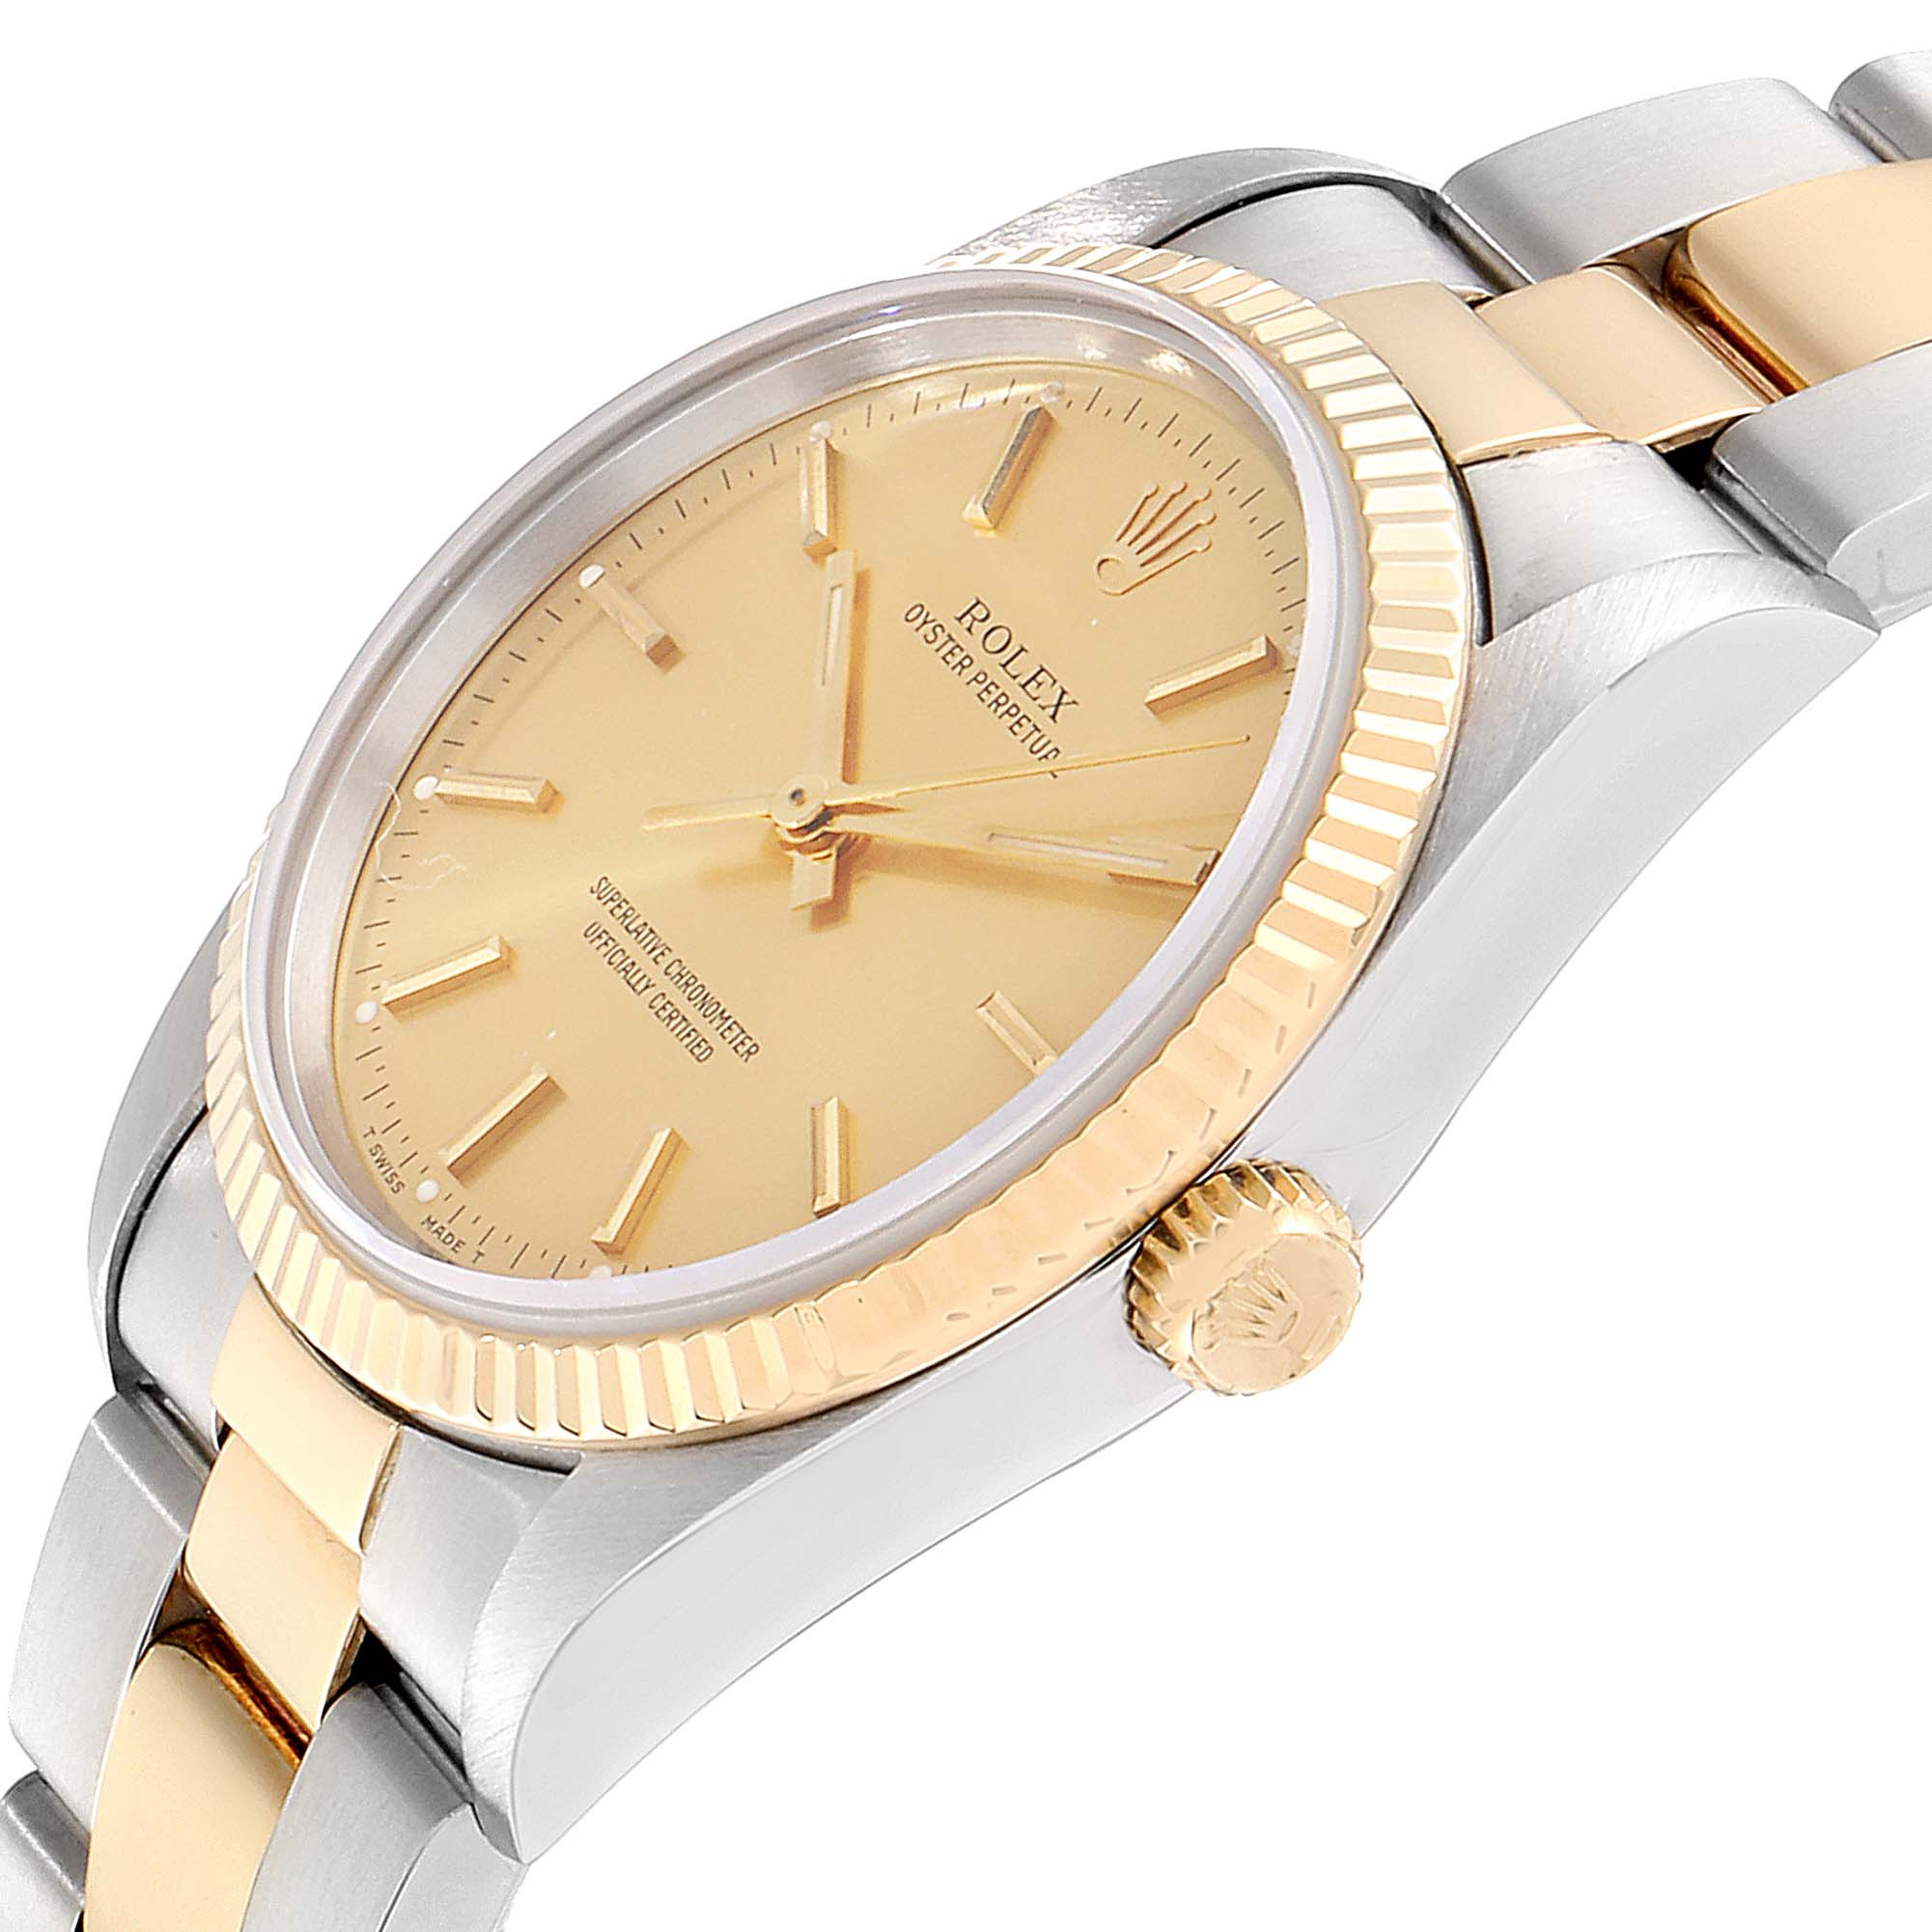 Rolex Oyster Perpetual NonDate Steel 18k Yellow Gold Mens Watch 14233 SwissWatchExpo